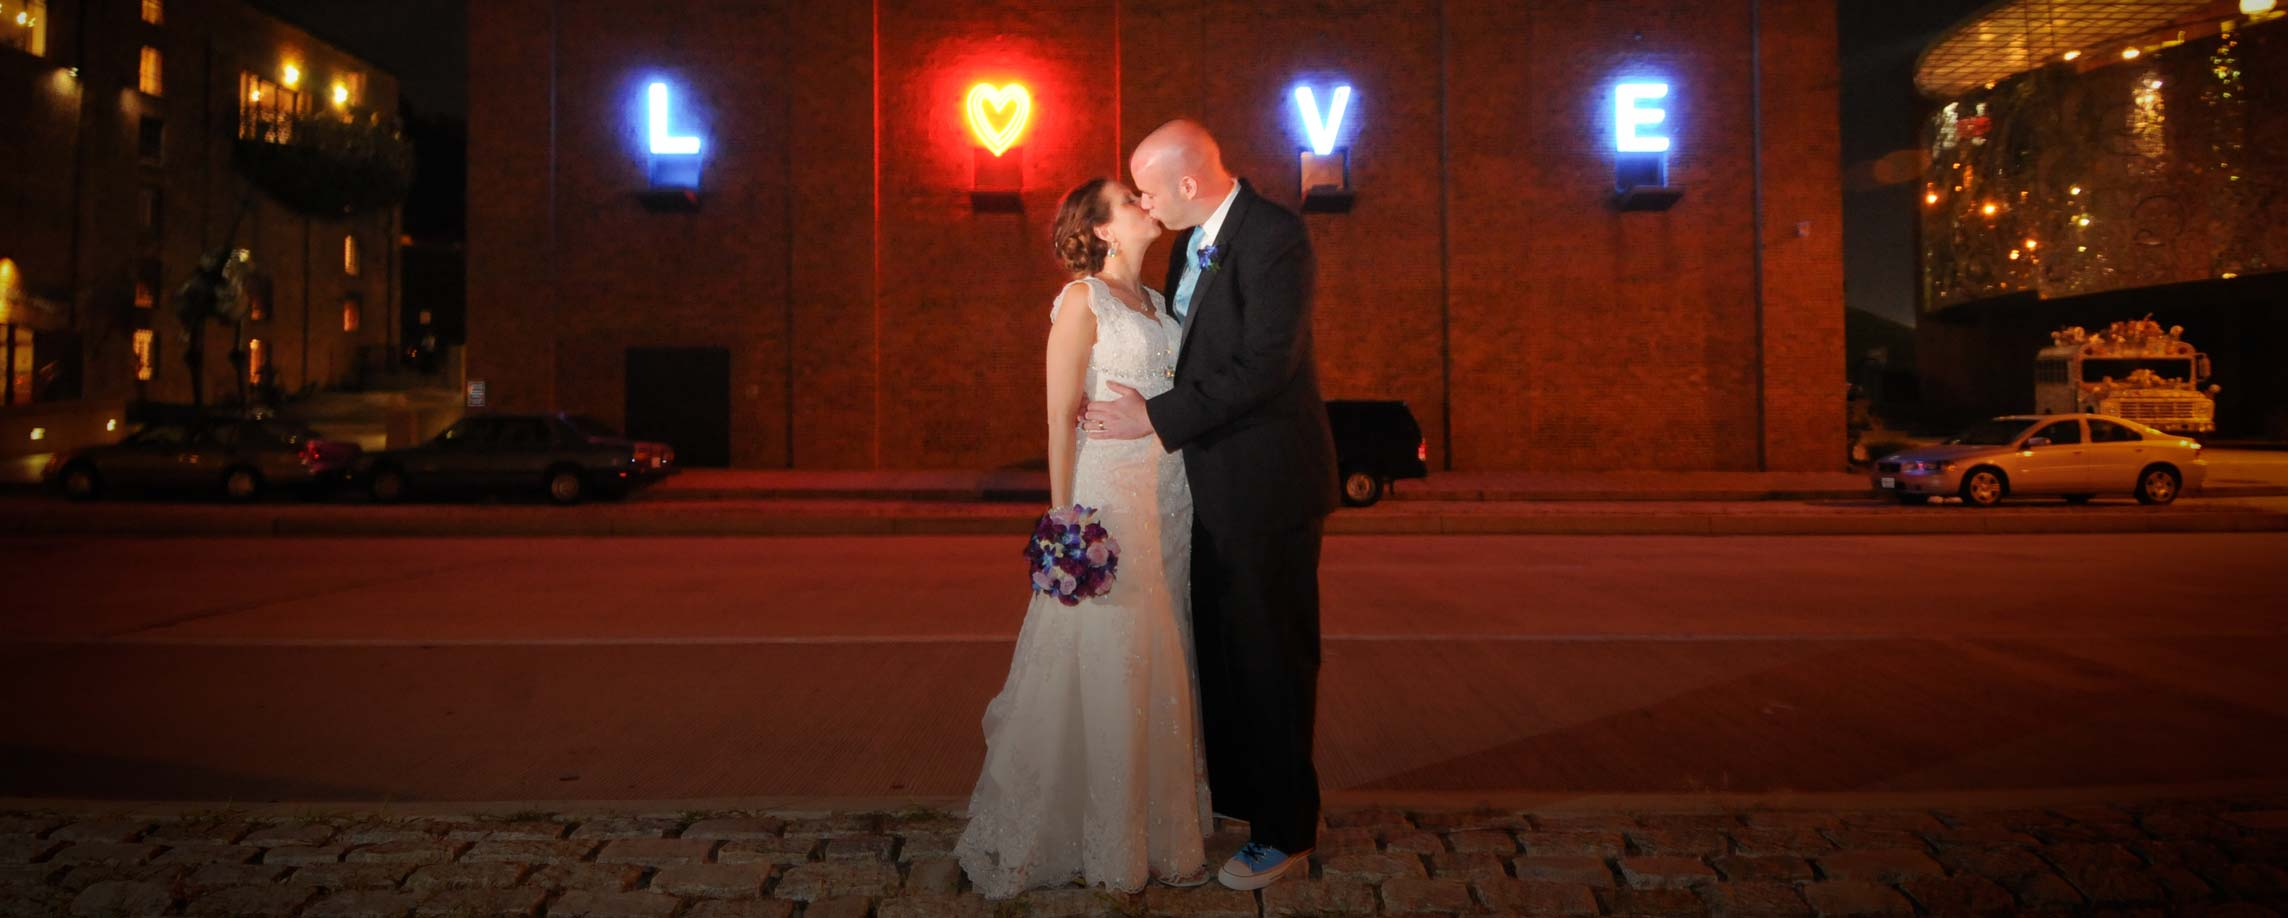 Wedding at the American Visionary Art Museum (AVAM)